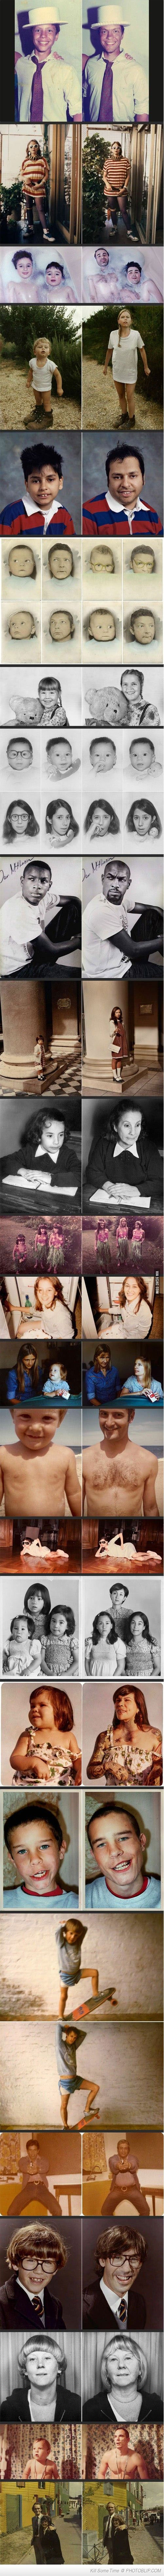 Then And Now Photos Compilation